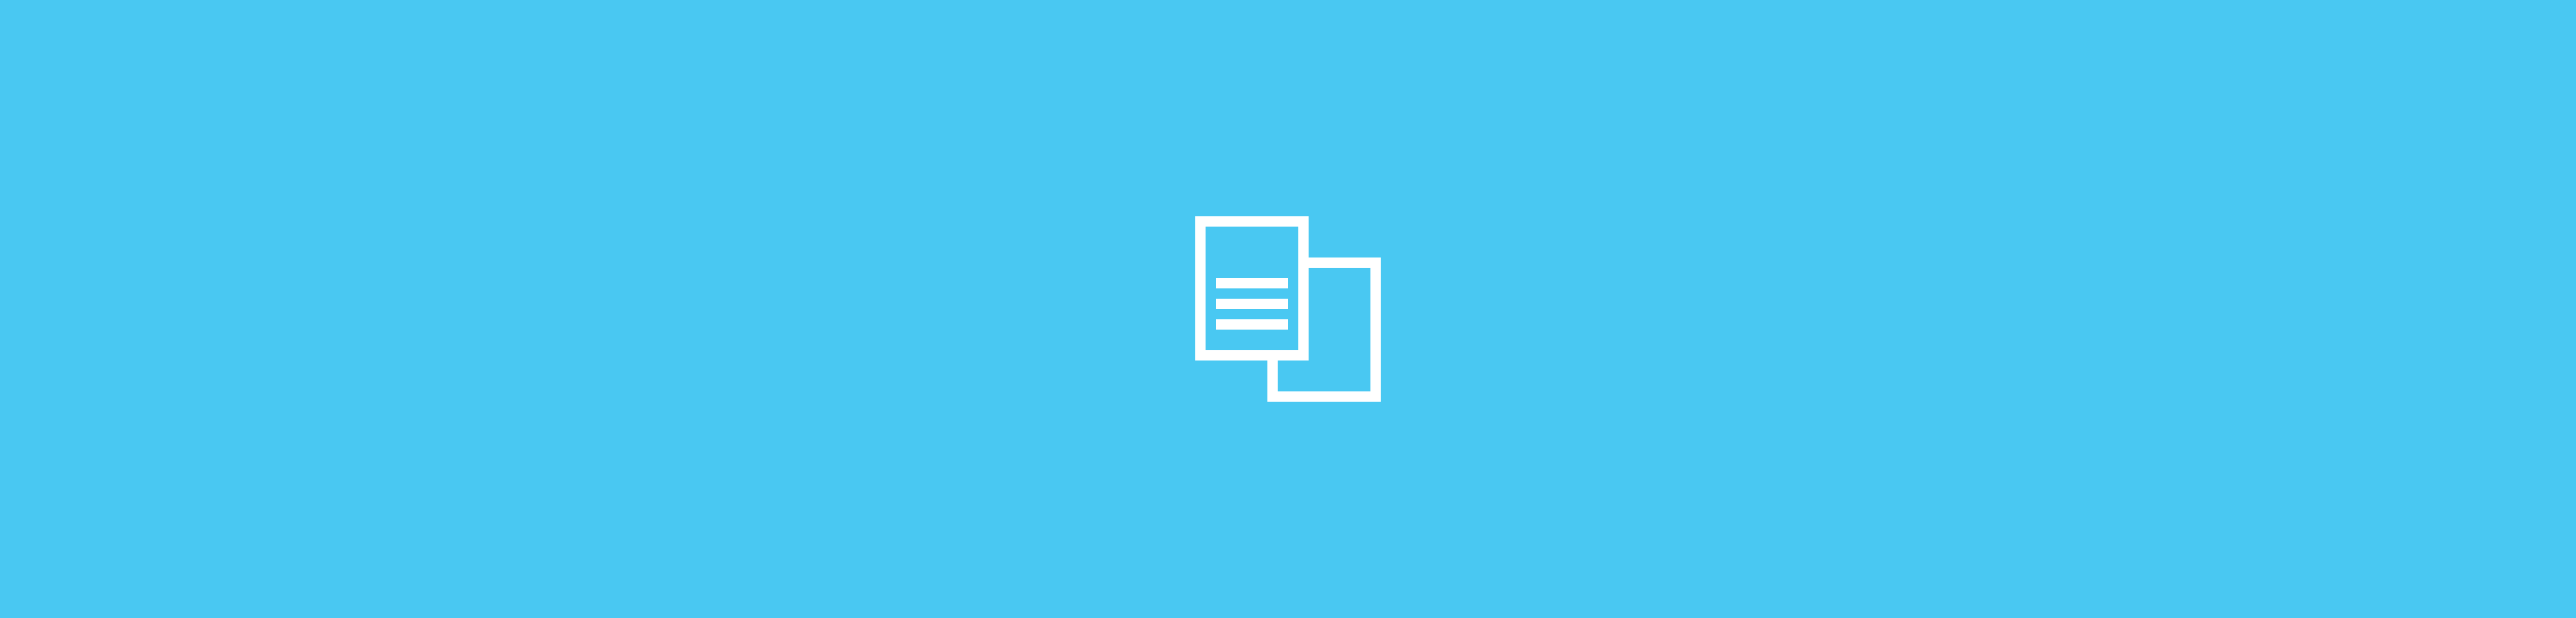 DOCX to PDF - Convert All Word Files to PDF for Free Online